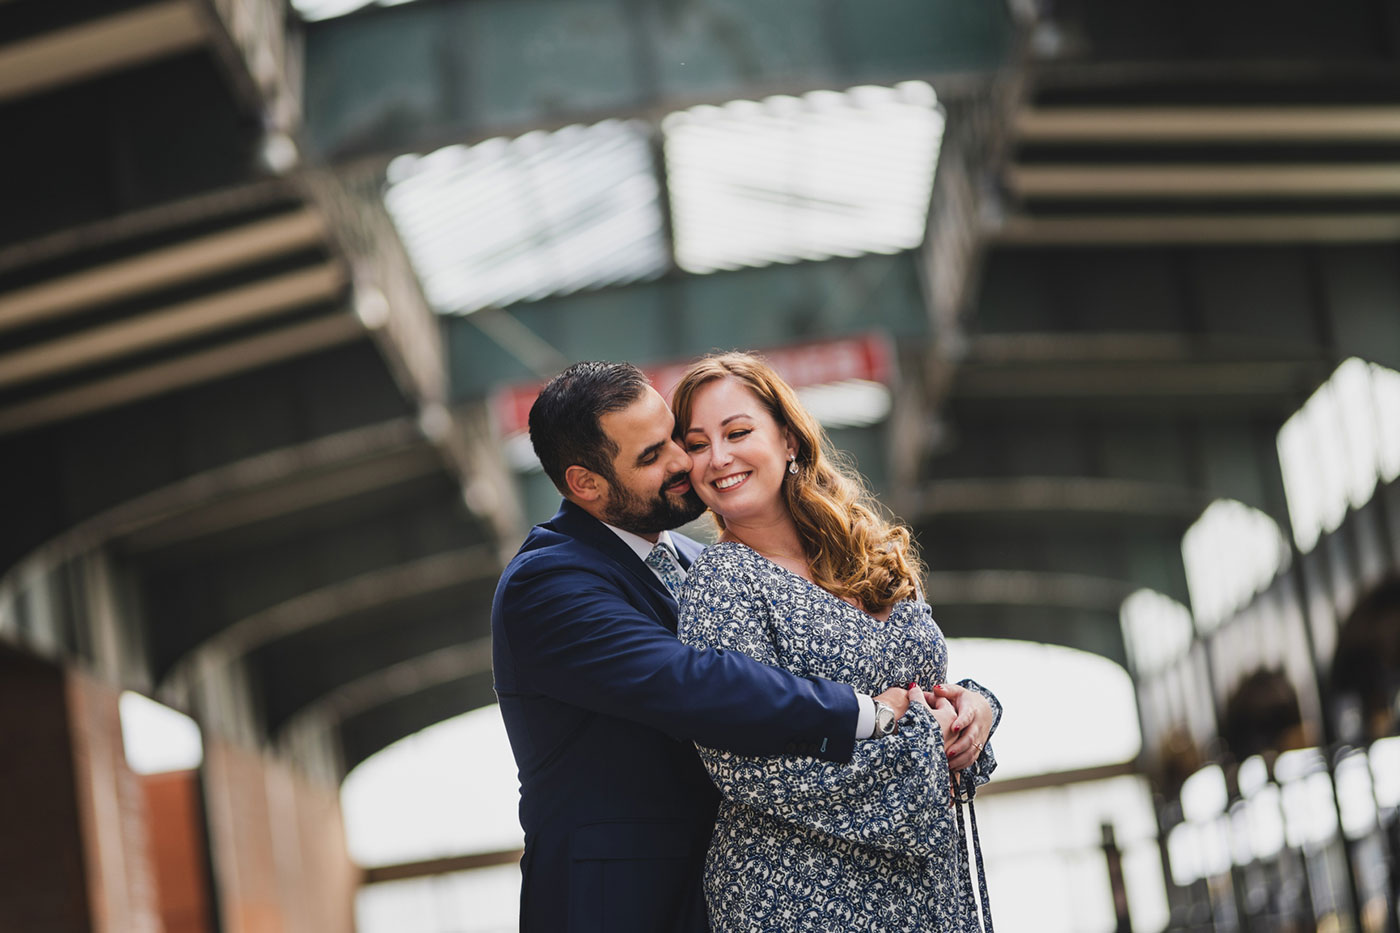 ESession photos at the Liberty State Park in Jersey City by Weddings by Hanel